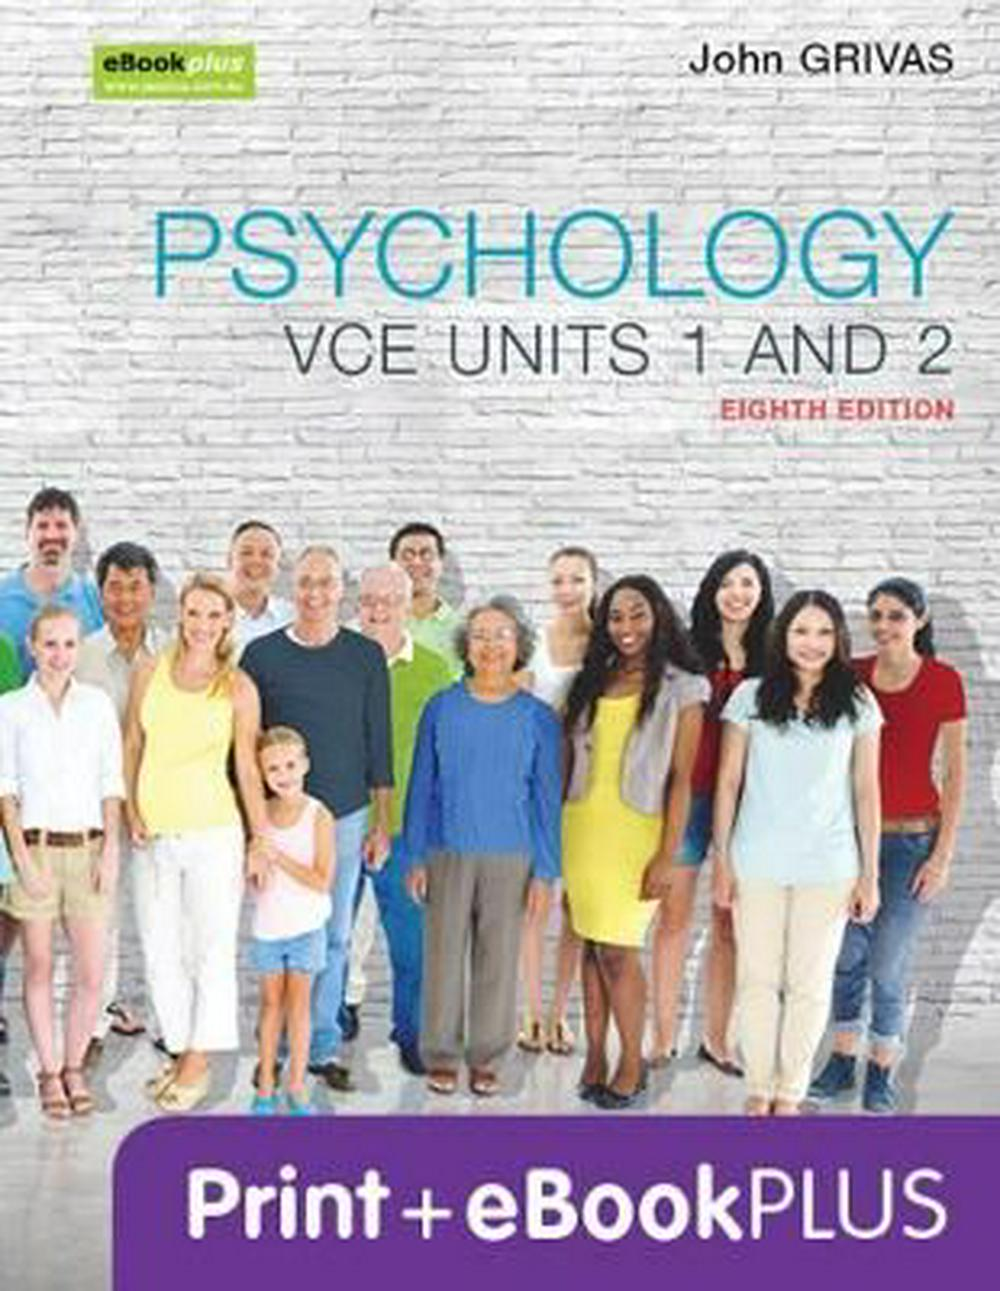 Psychology VCE Units 1 and 2 (8th Edition) - Print & eBookPLUS